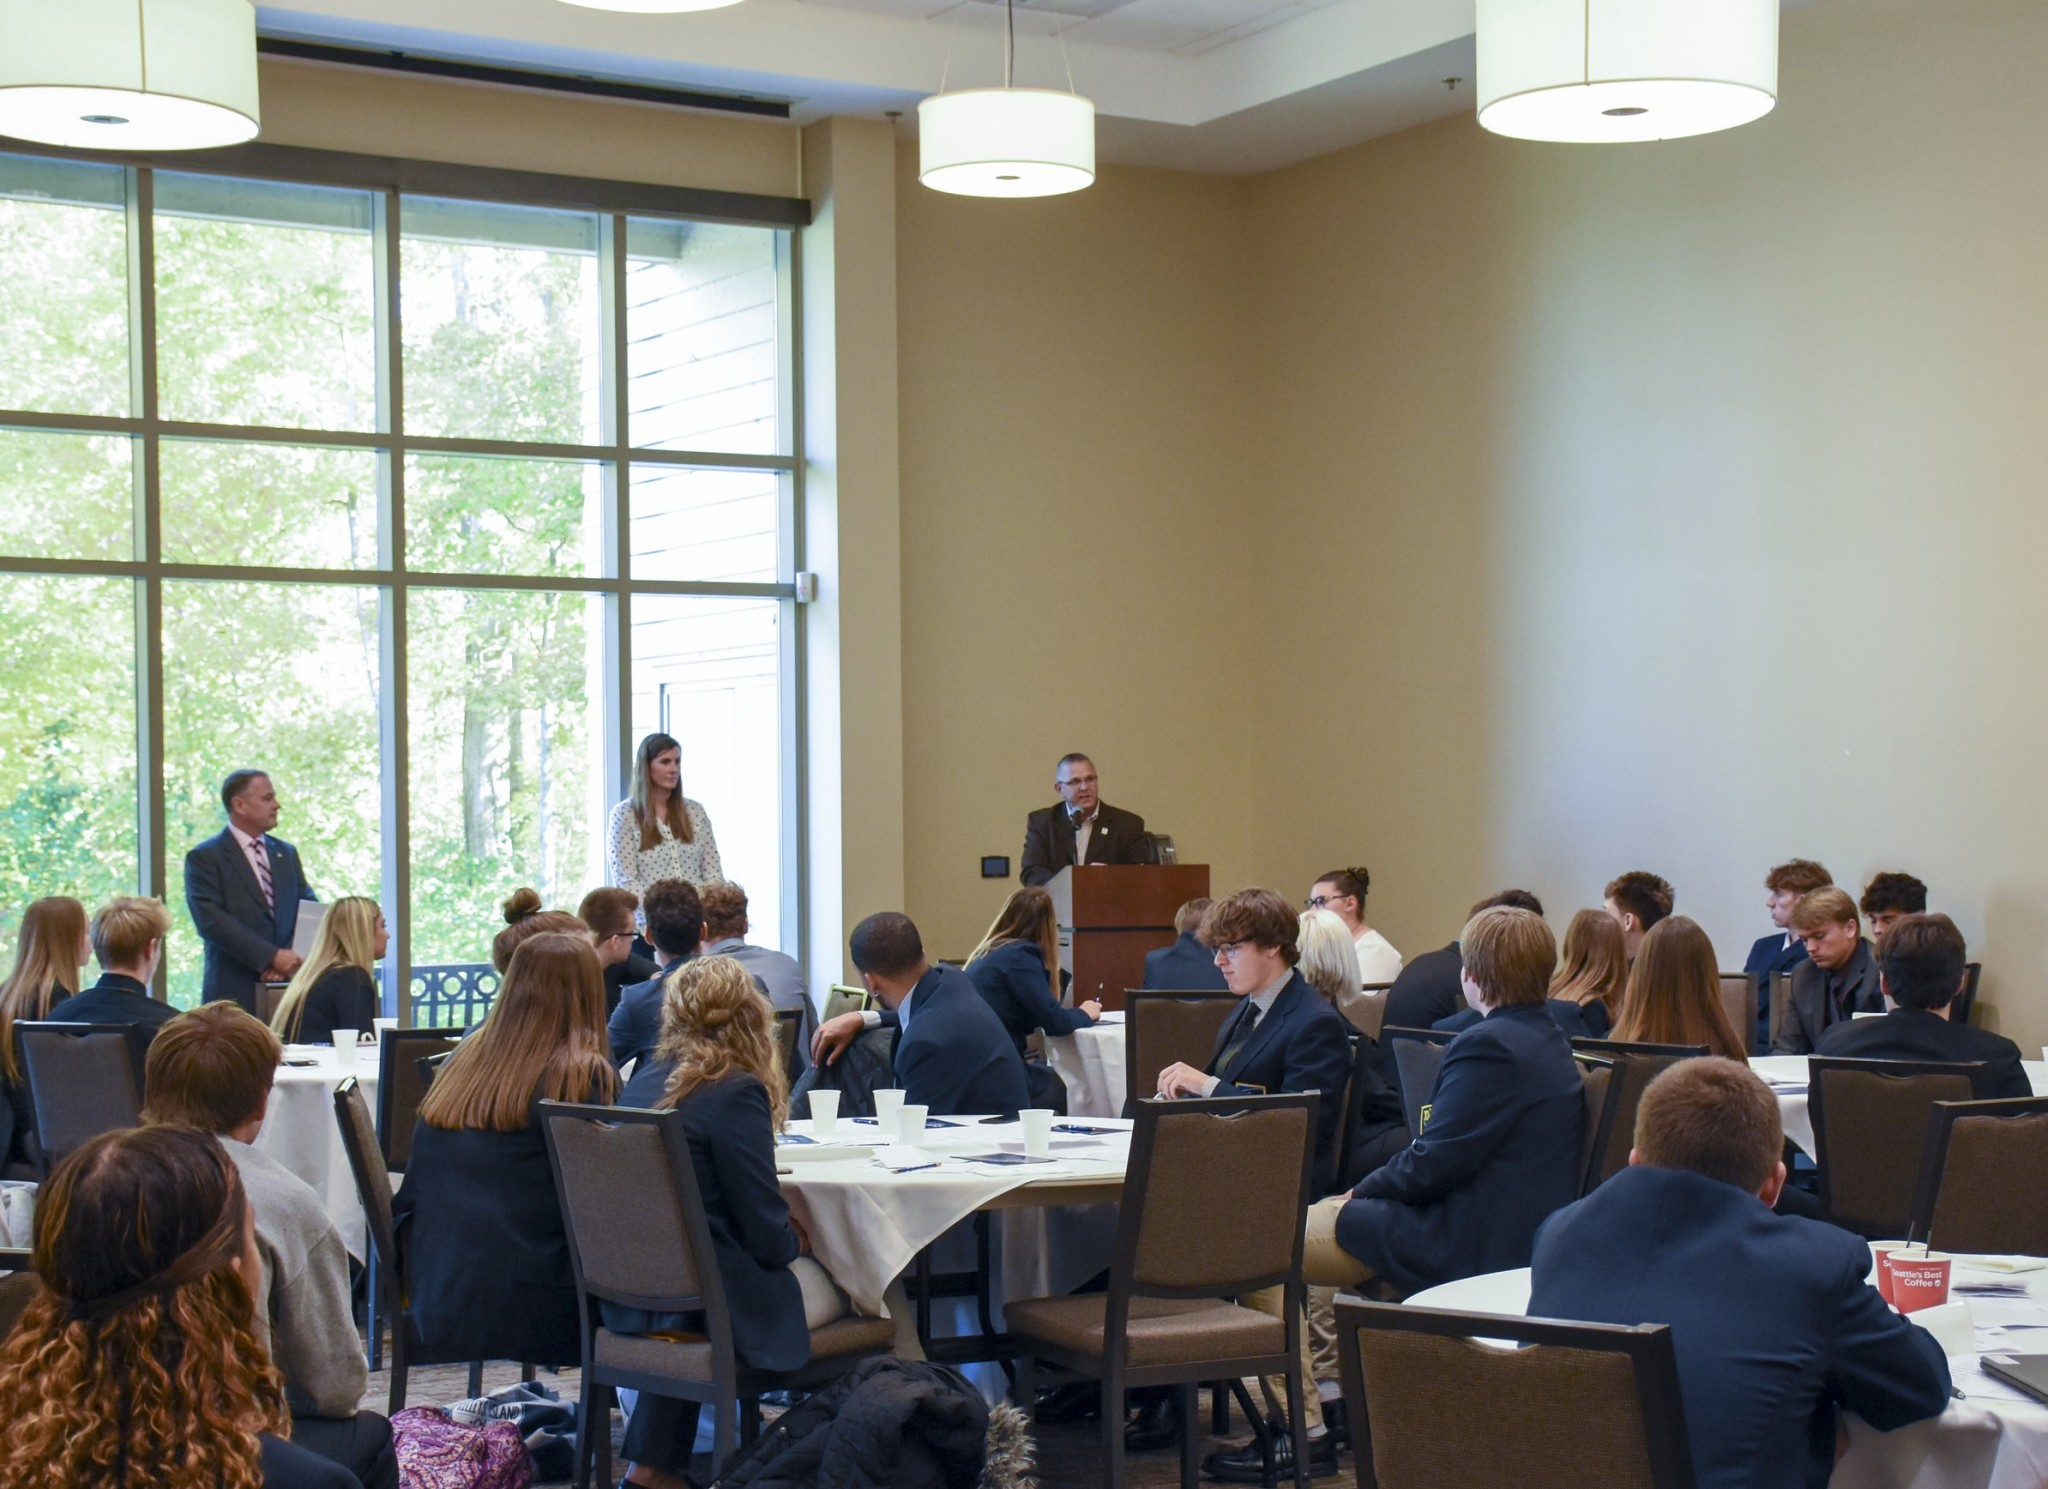 Terra State President Dr. Ron Schumacher congratulating the DECA participants. (Submitted photo)